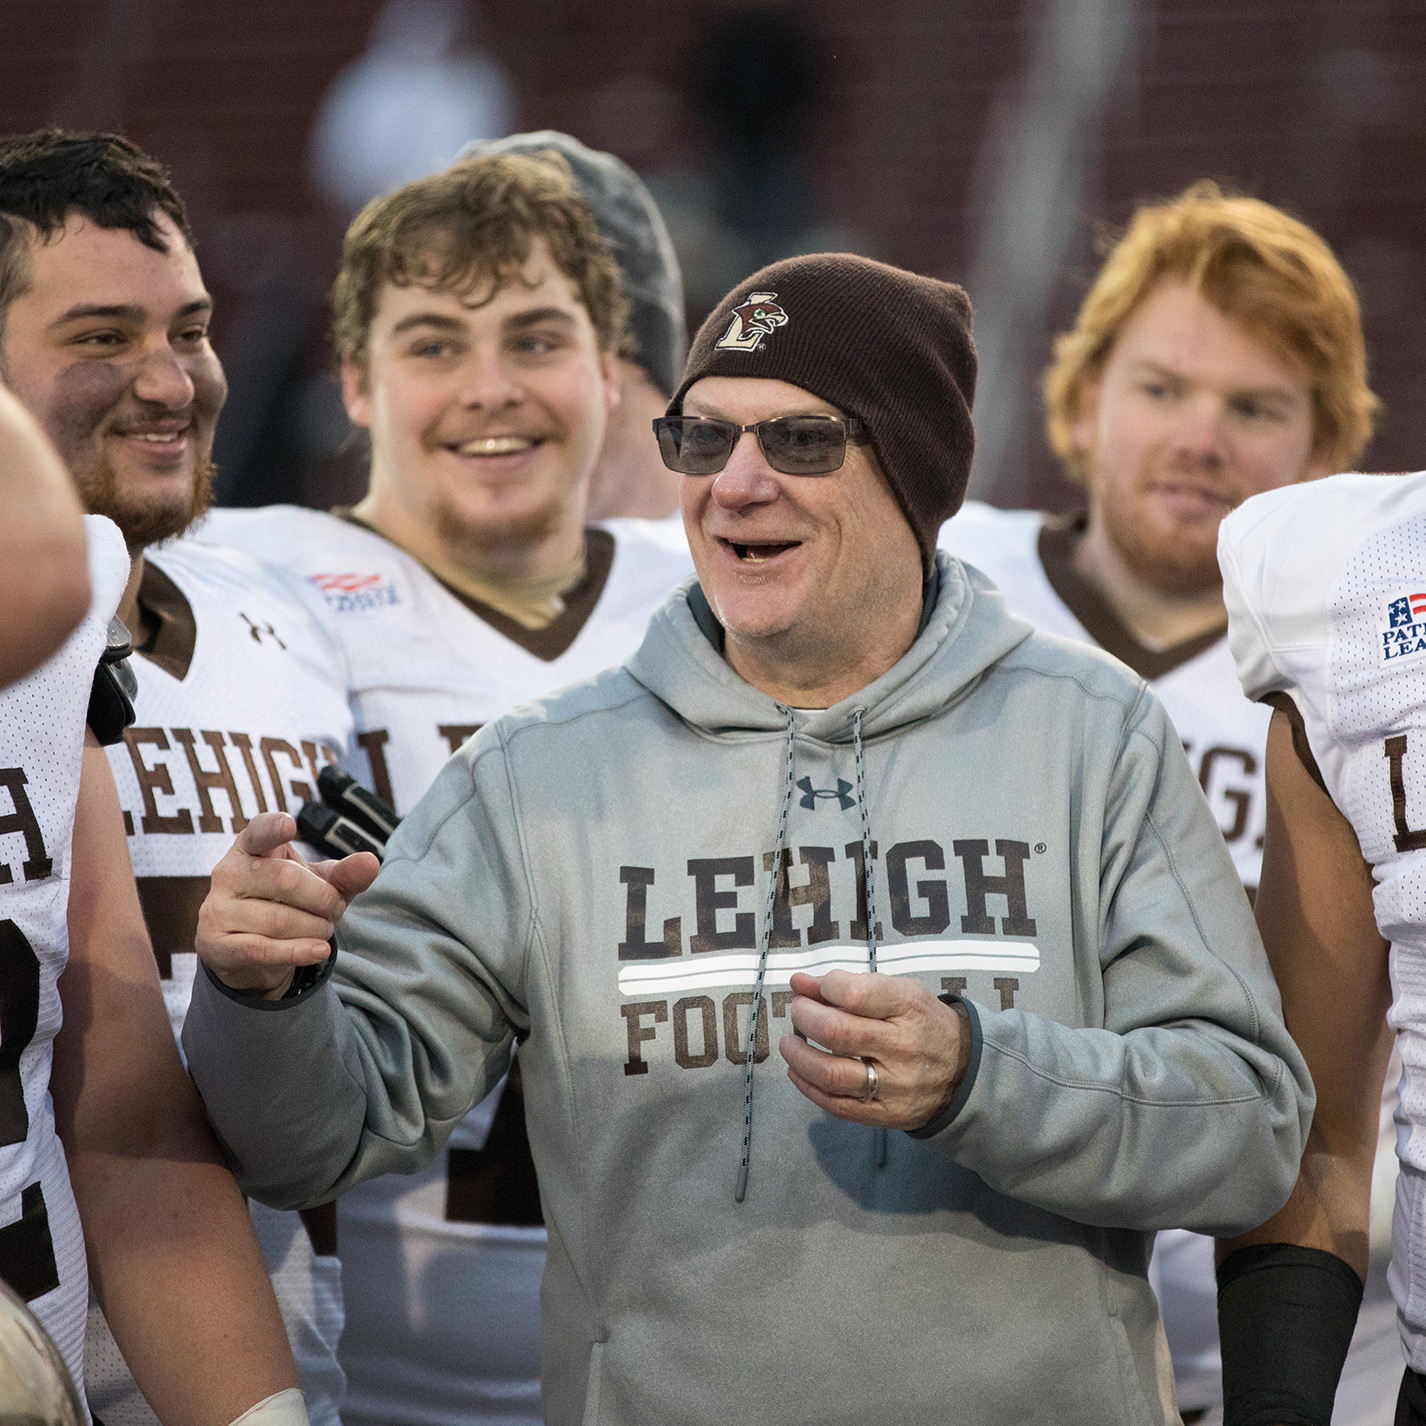 Lehigh football coach Andy Coen